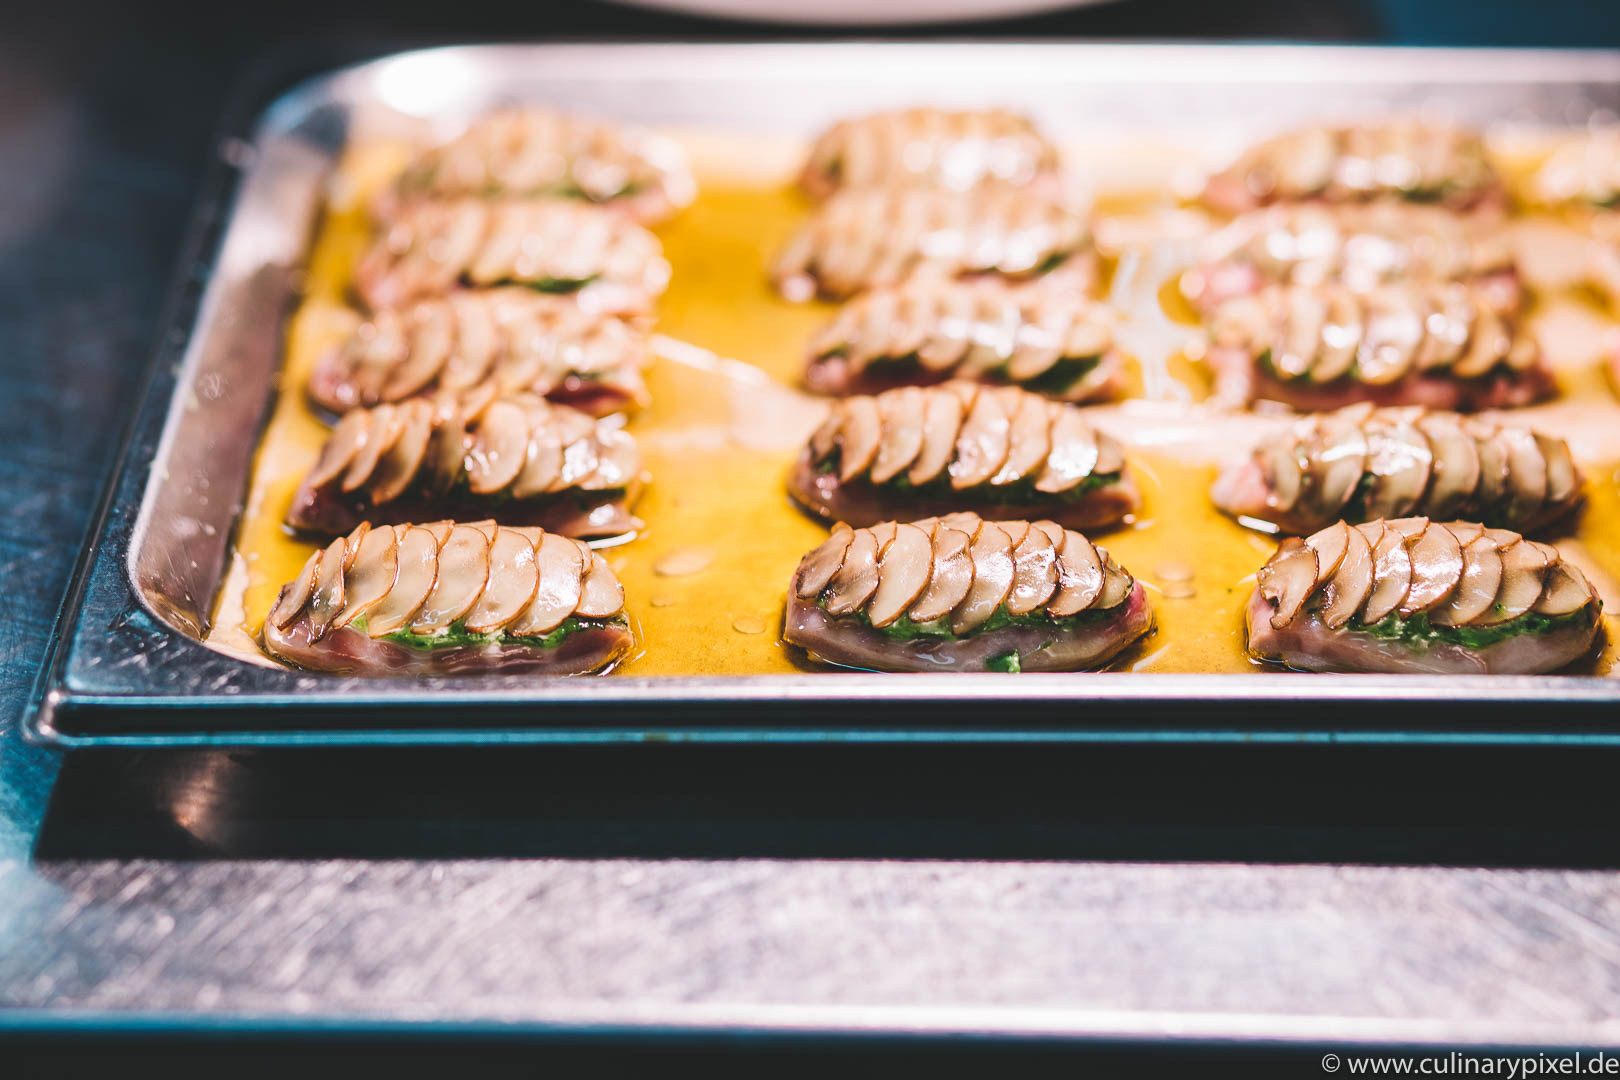 Culinary Pixel By Annette Sandner: Food & Gastro Blog ... avec Canape But Mathis